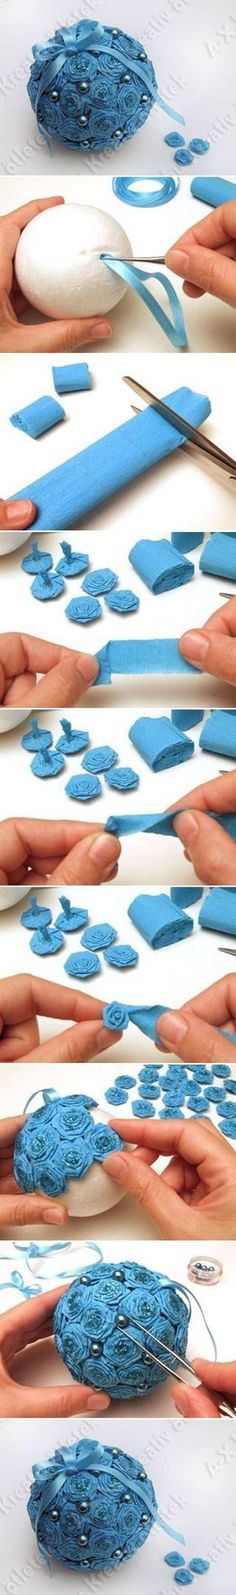 Great Craft   Click to see More DIY & Crafts Tutorials on Our Site.